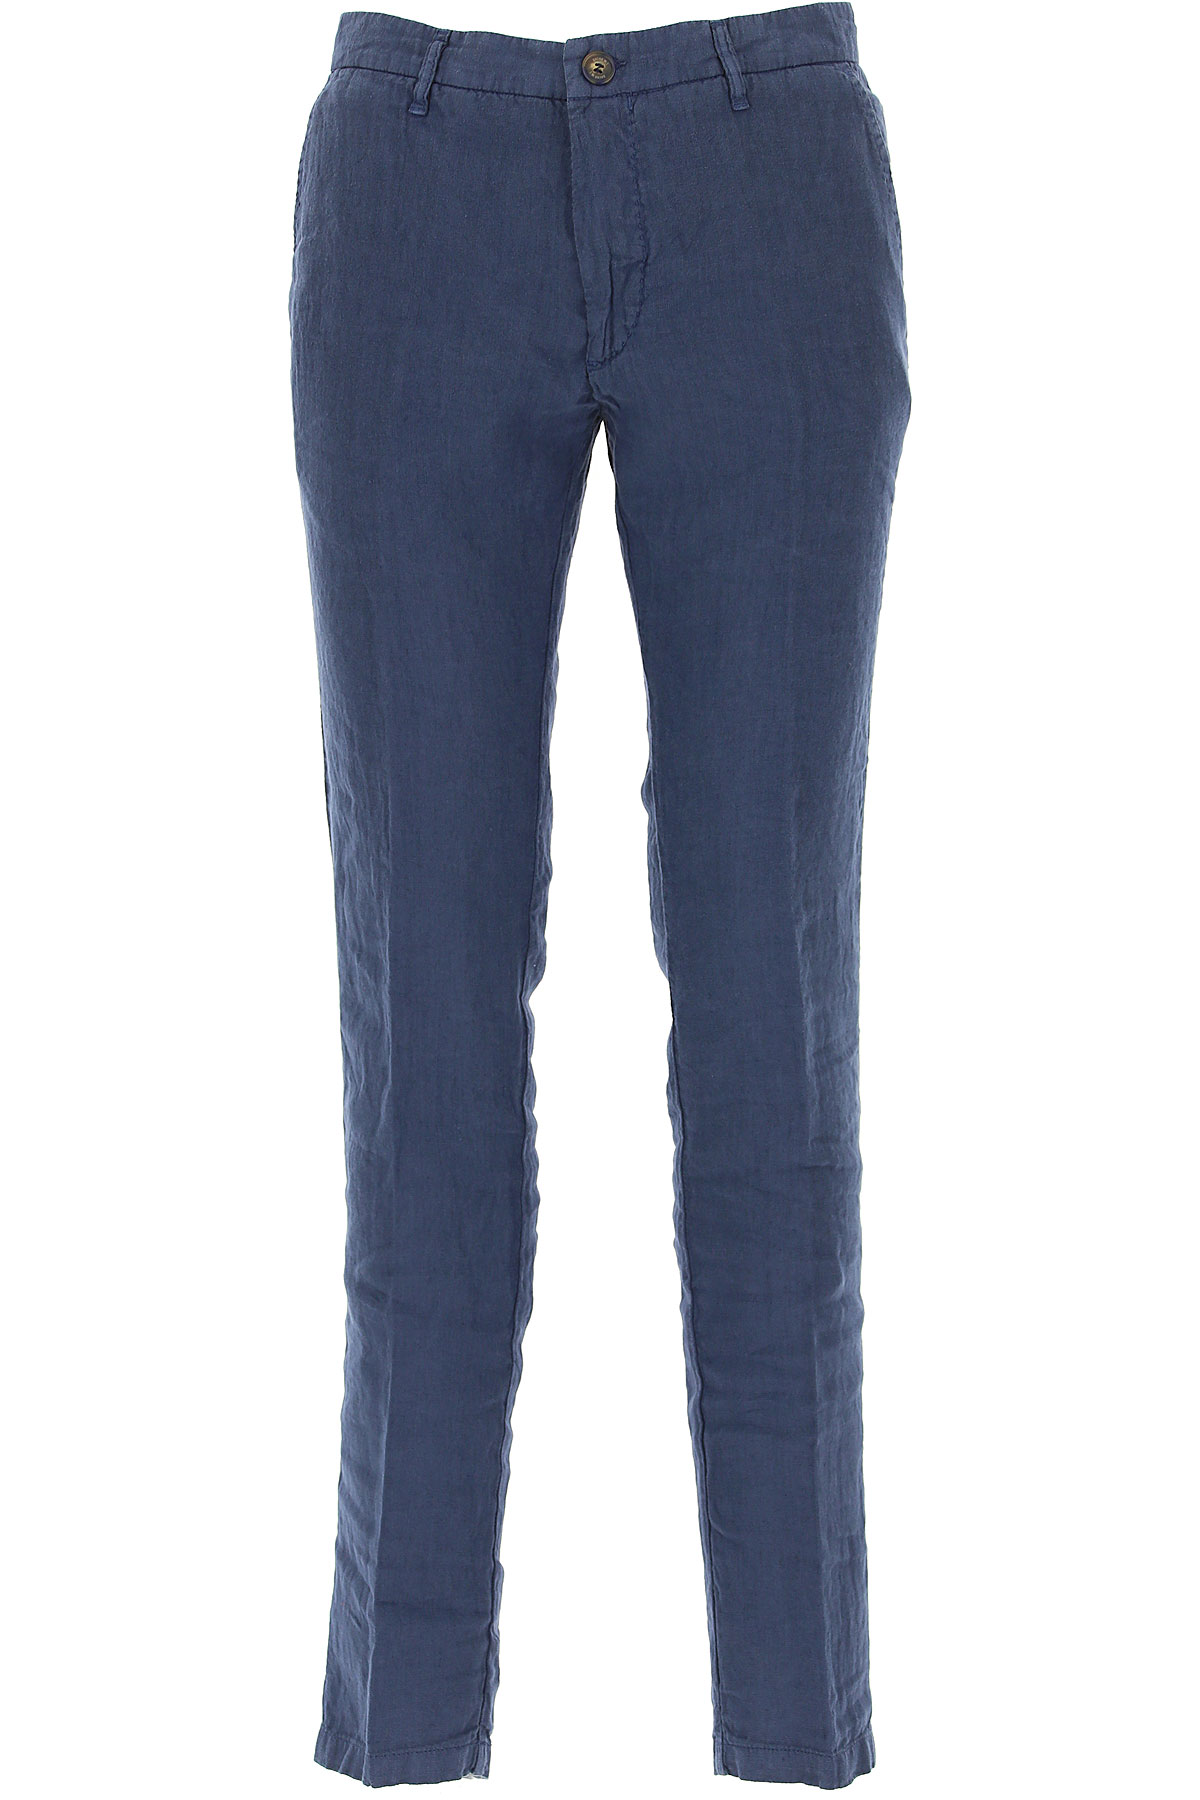 J.W. Brine Pants for Men On Sale in Outlet, Blue, linen, 2019, 30 32 34 38